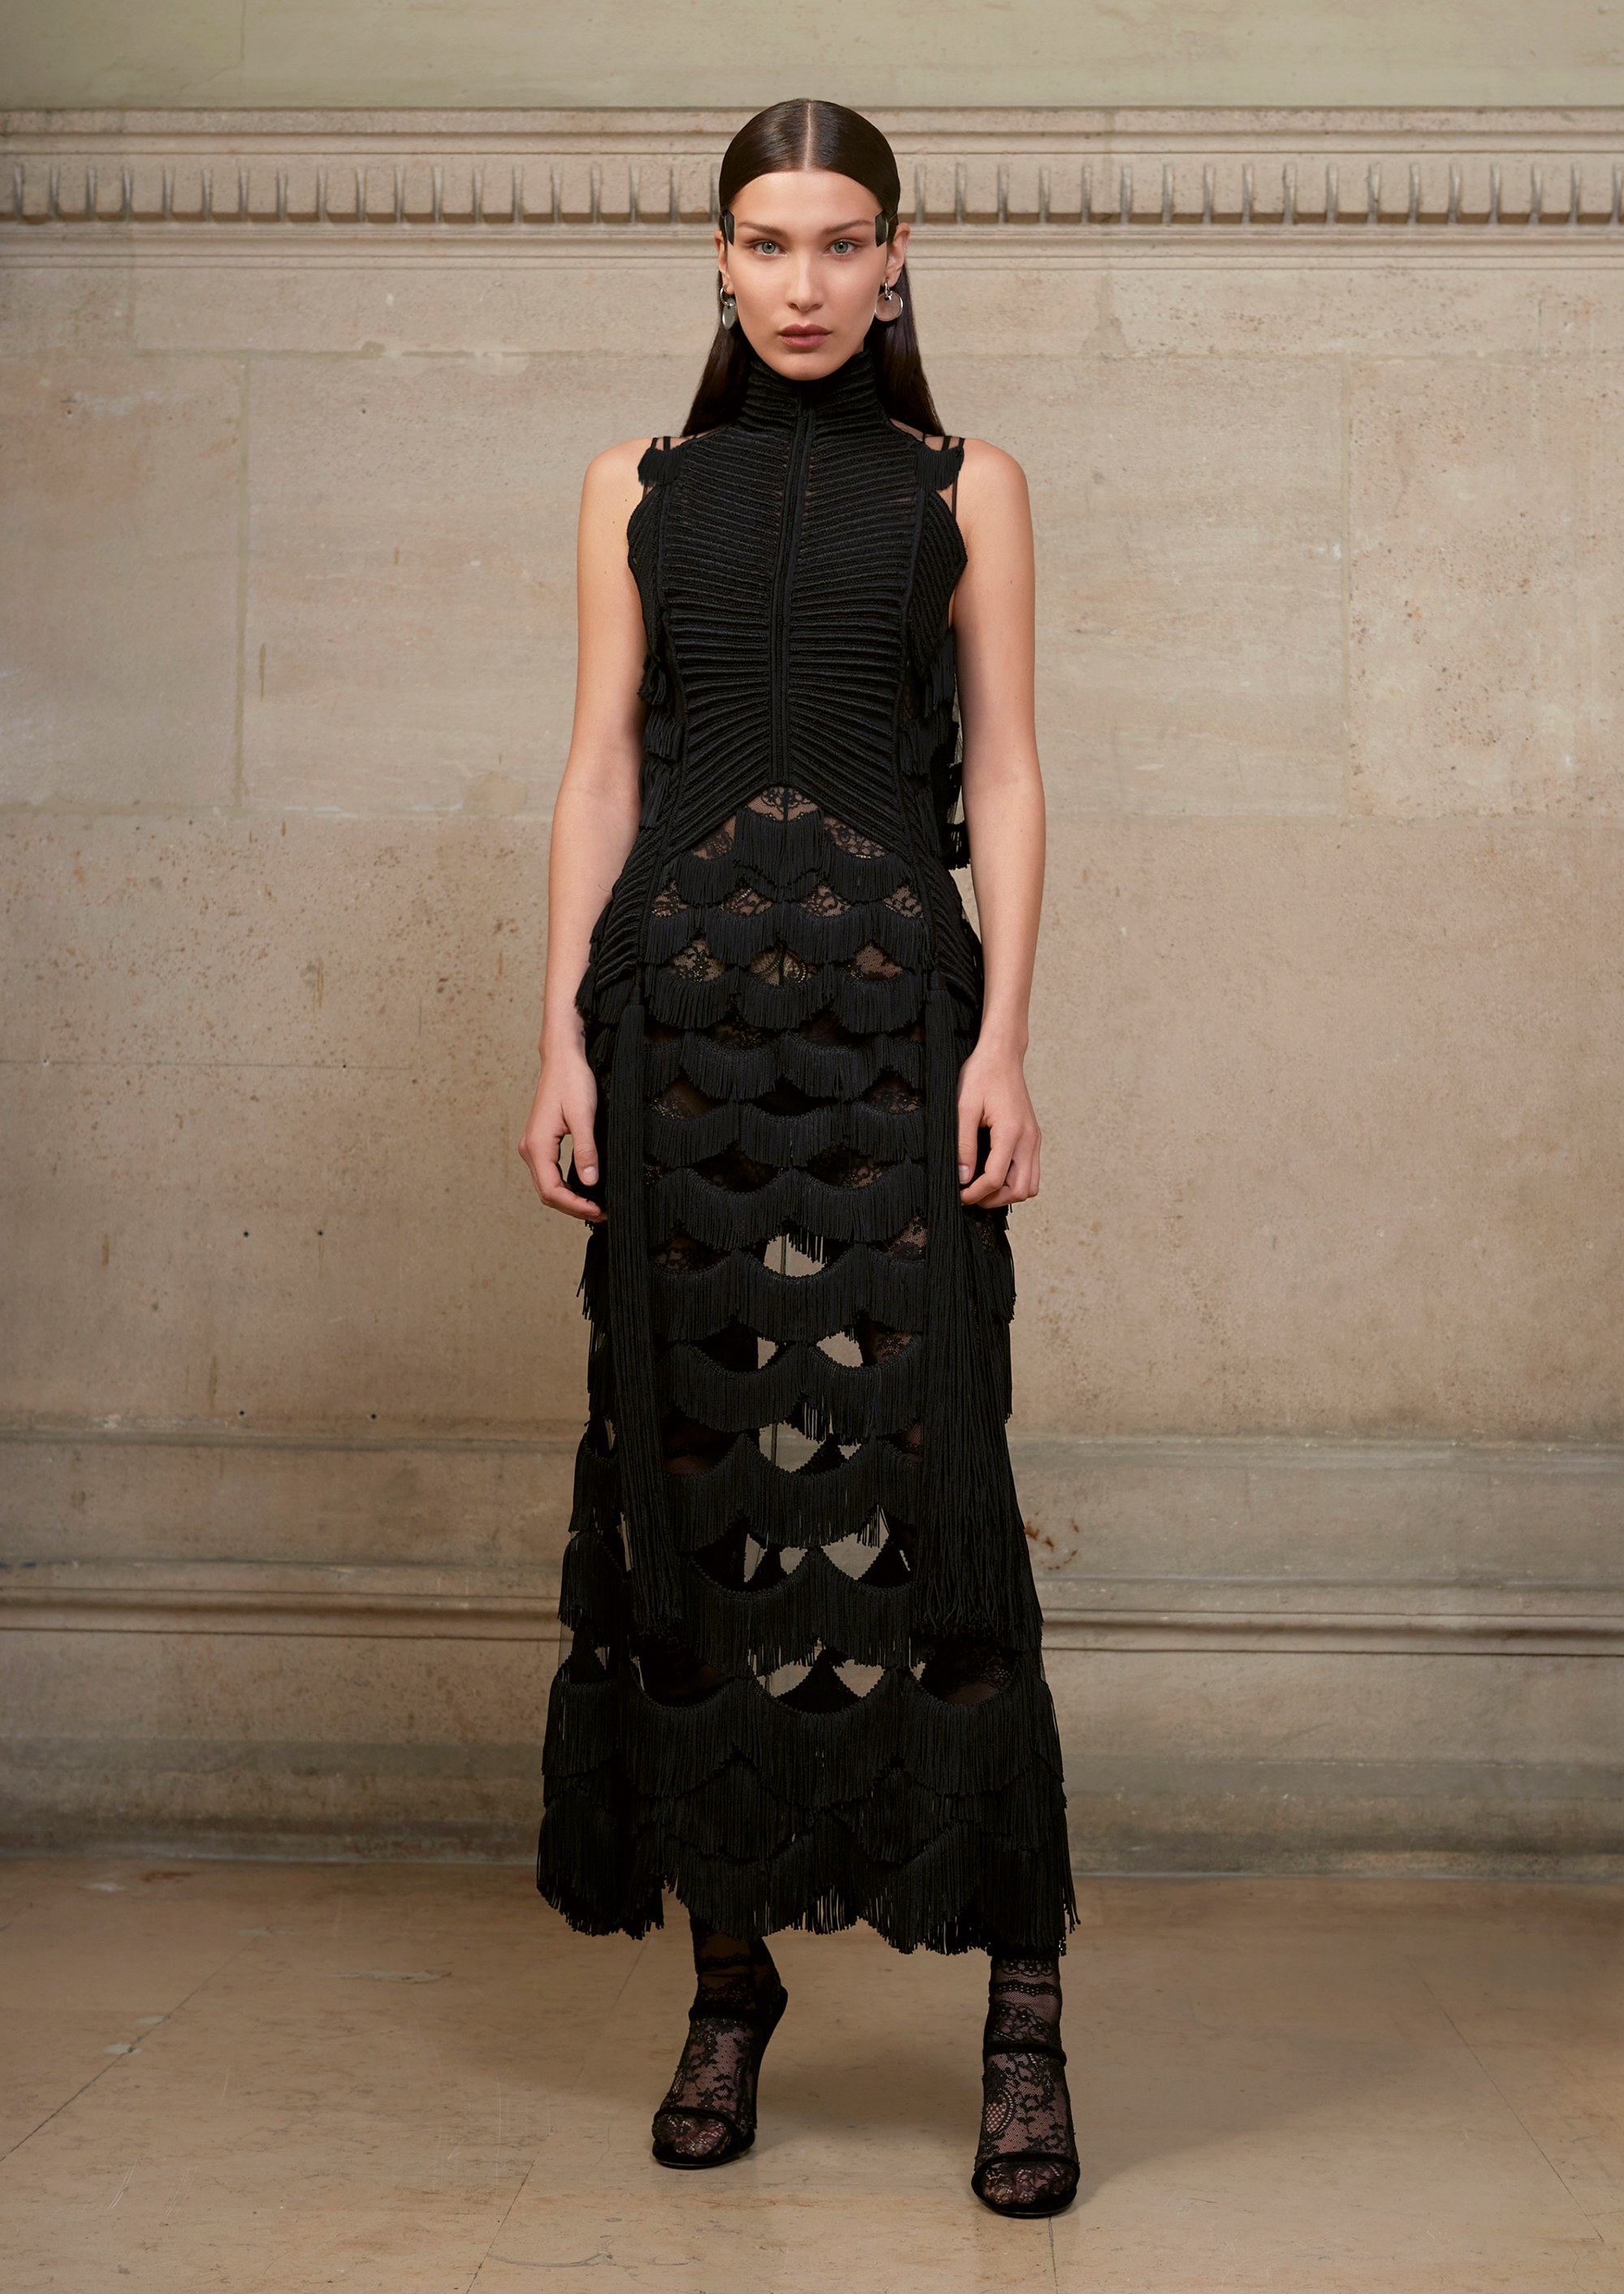 11-givenchy-couture-spring-2017